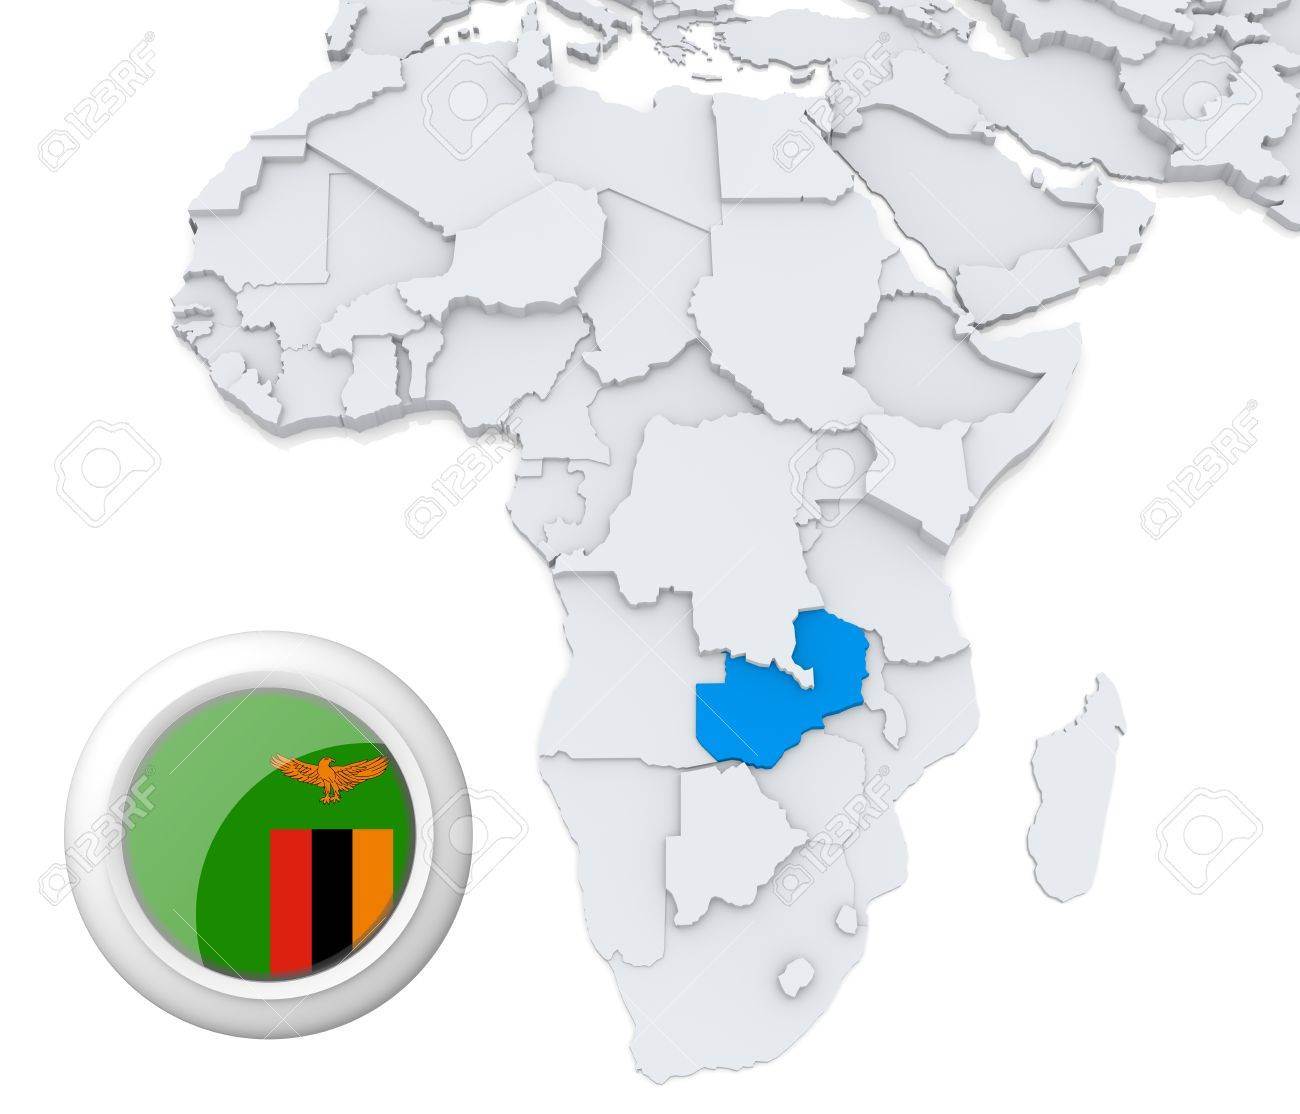 Map Of Africa Zambia.3d Modeled Map Of Africa With Highlighted State Of Zambia With